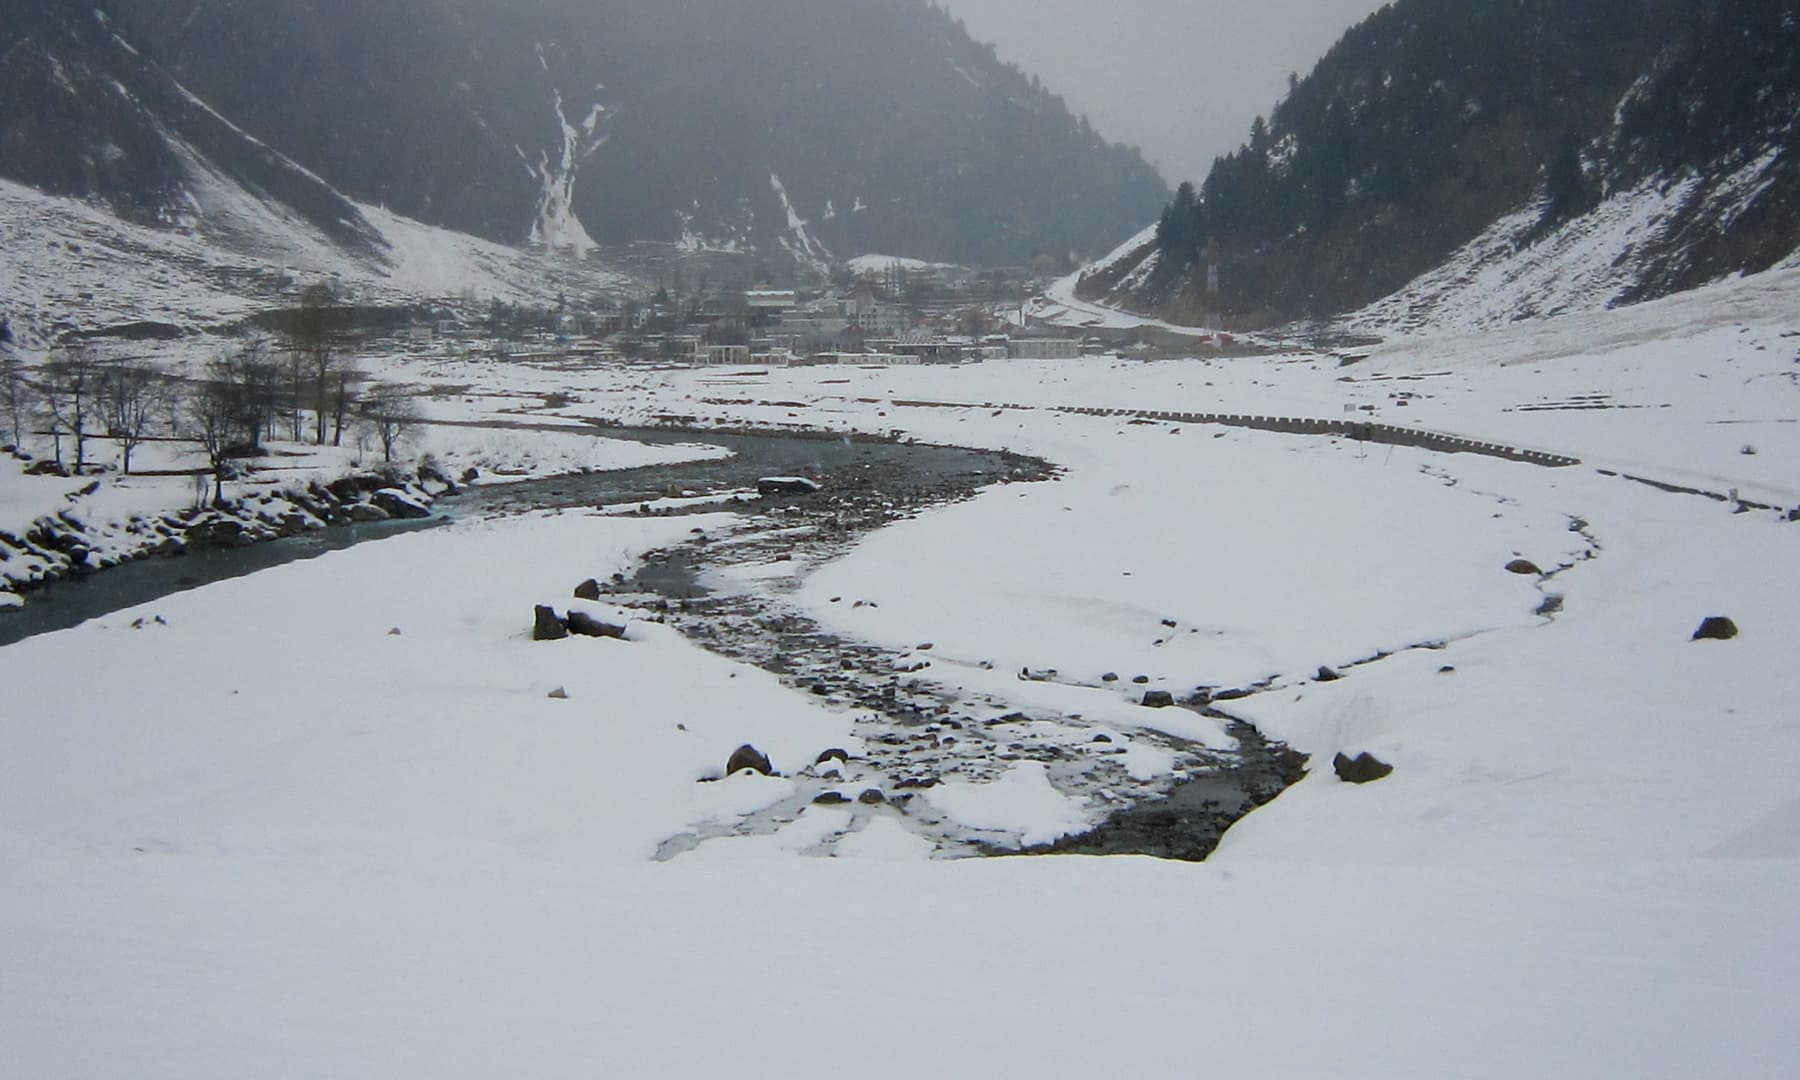 The Naran valley.